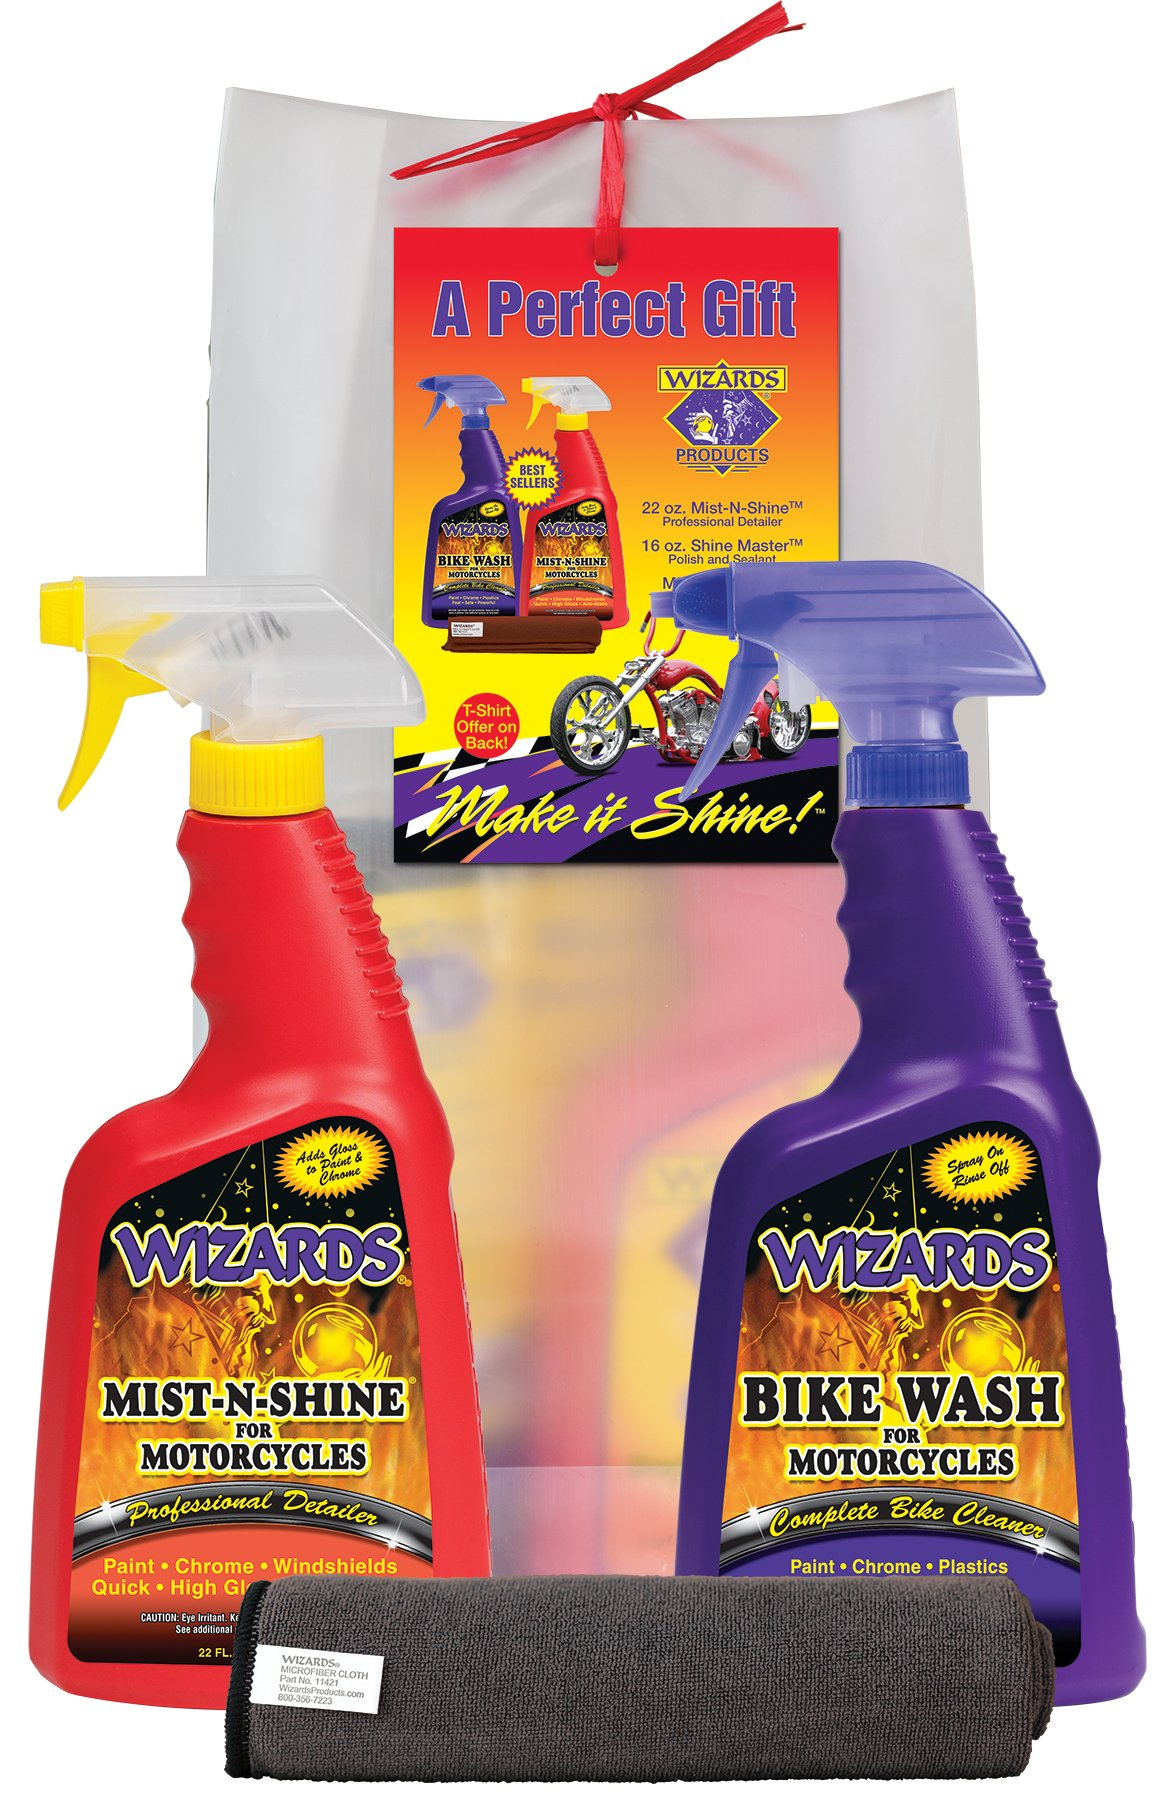 Wizards 71001 Motorcycle Gift Bag